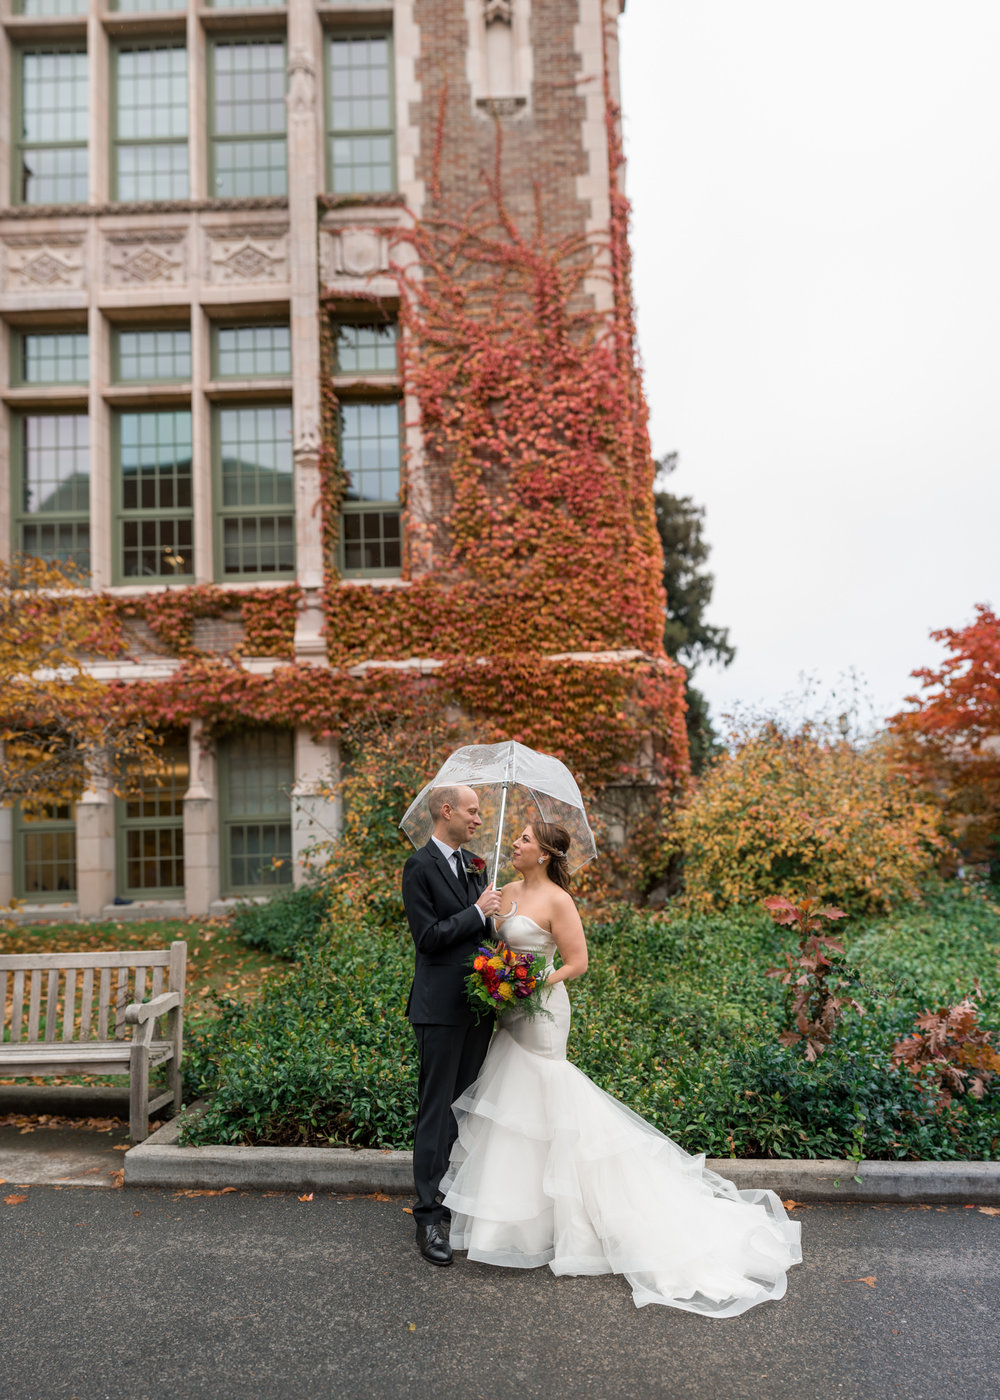 Bride and Groom Portrait at University of Washington